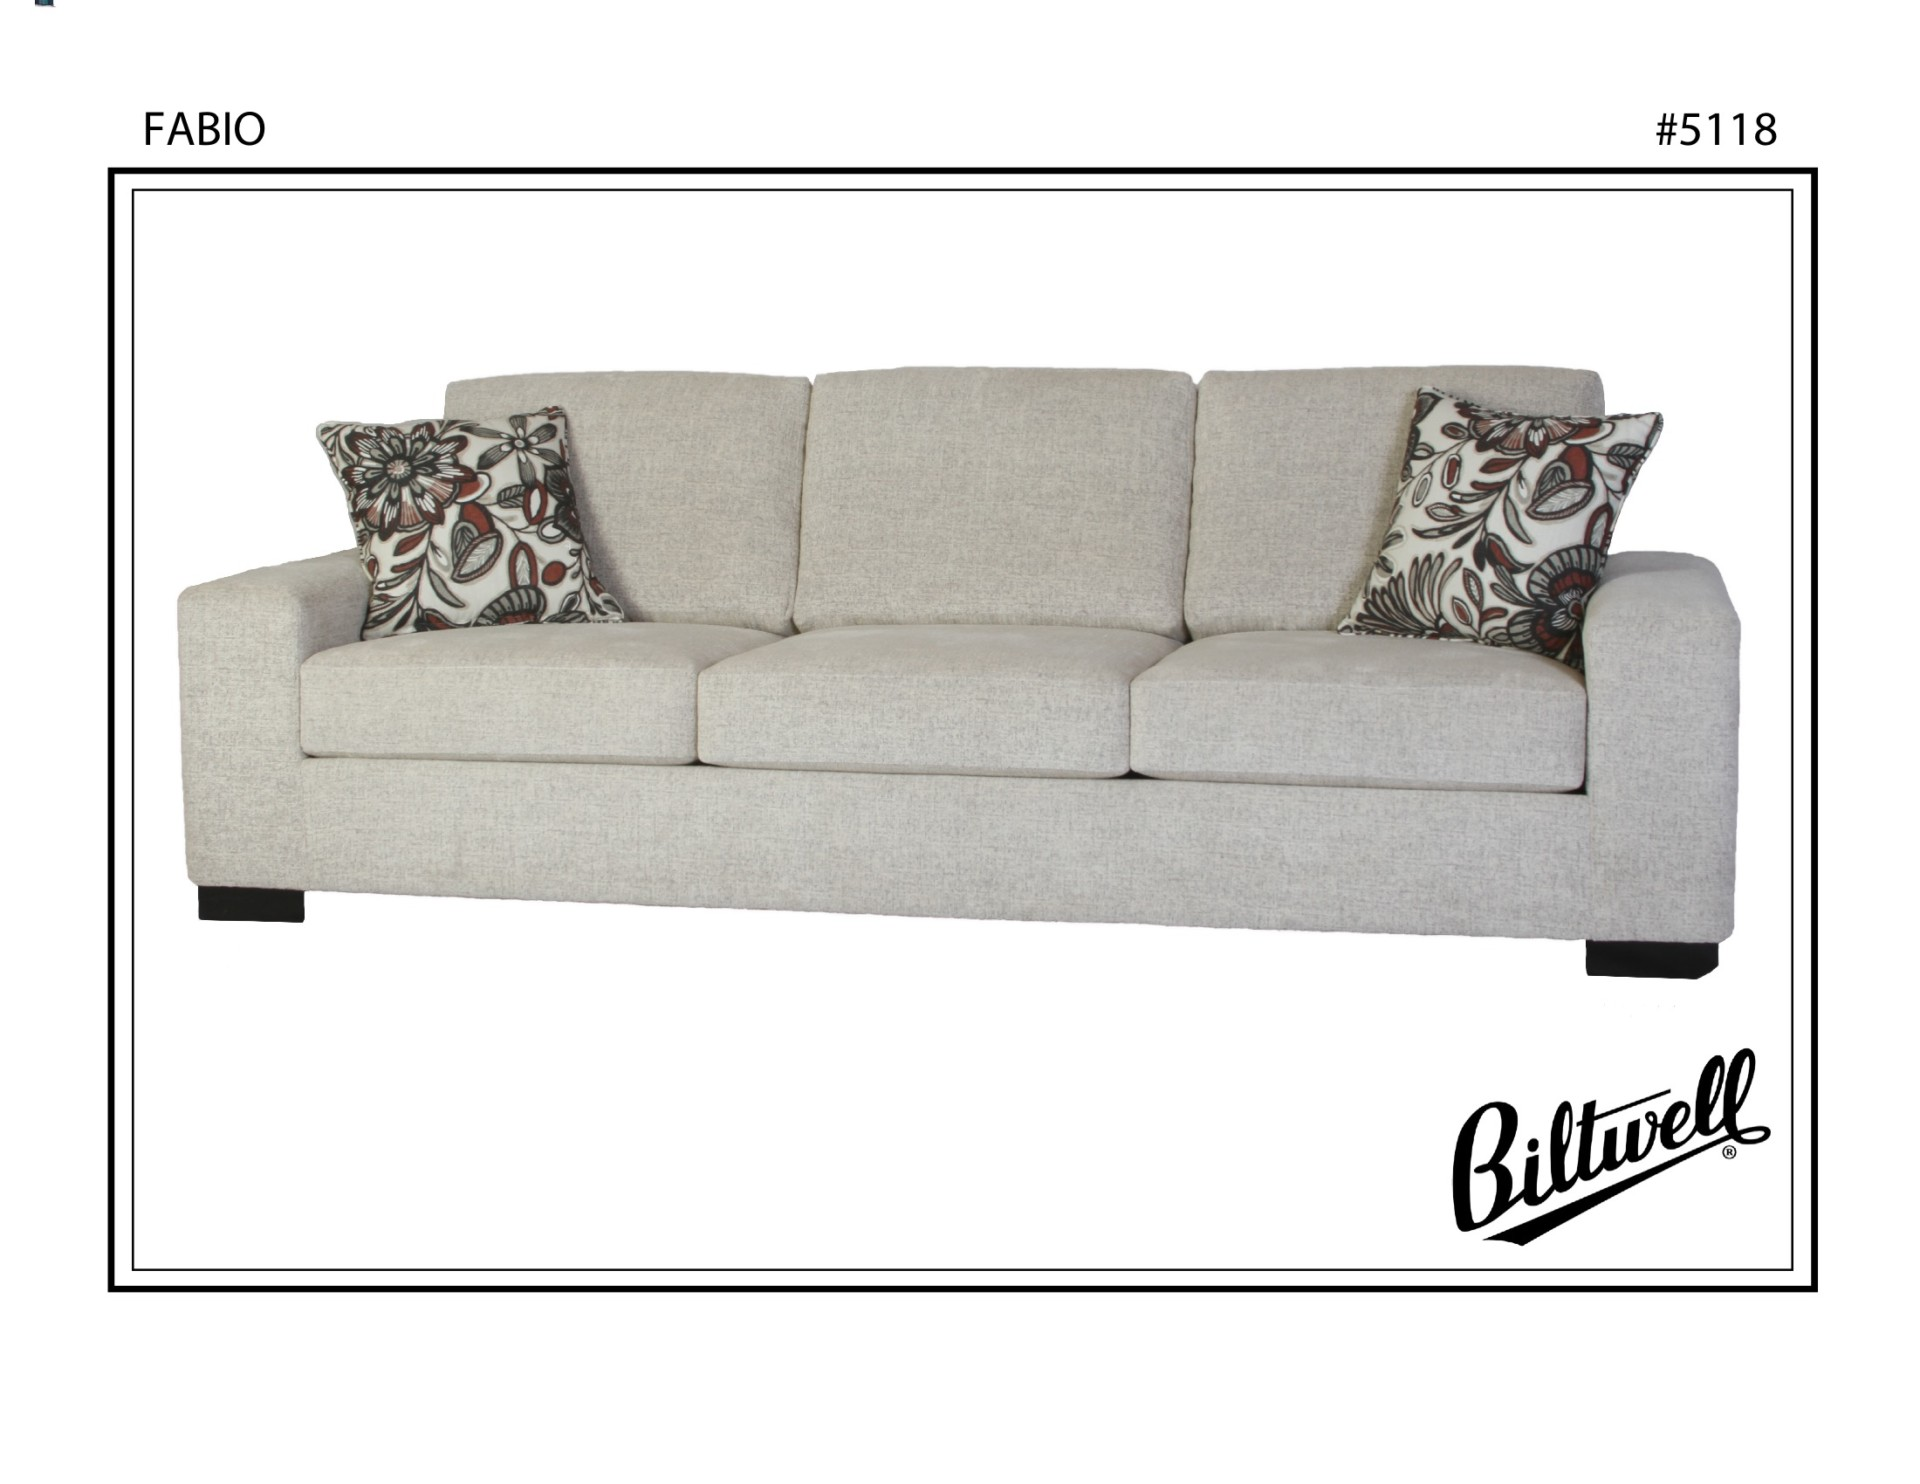 sofa rph cover for bed with chaise fabio furniture photo of co united states